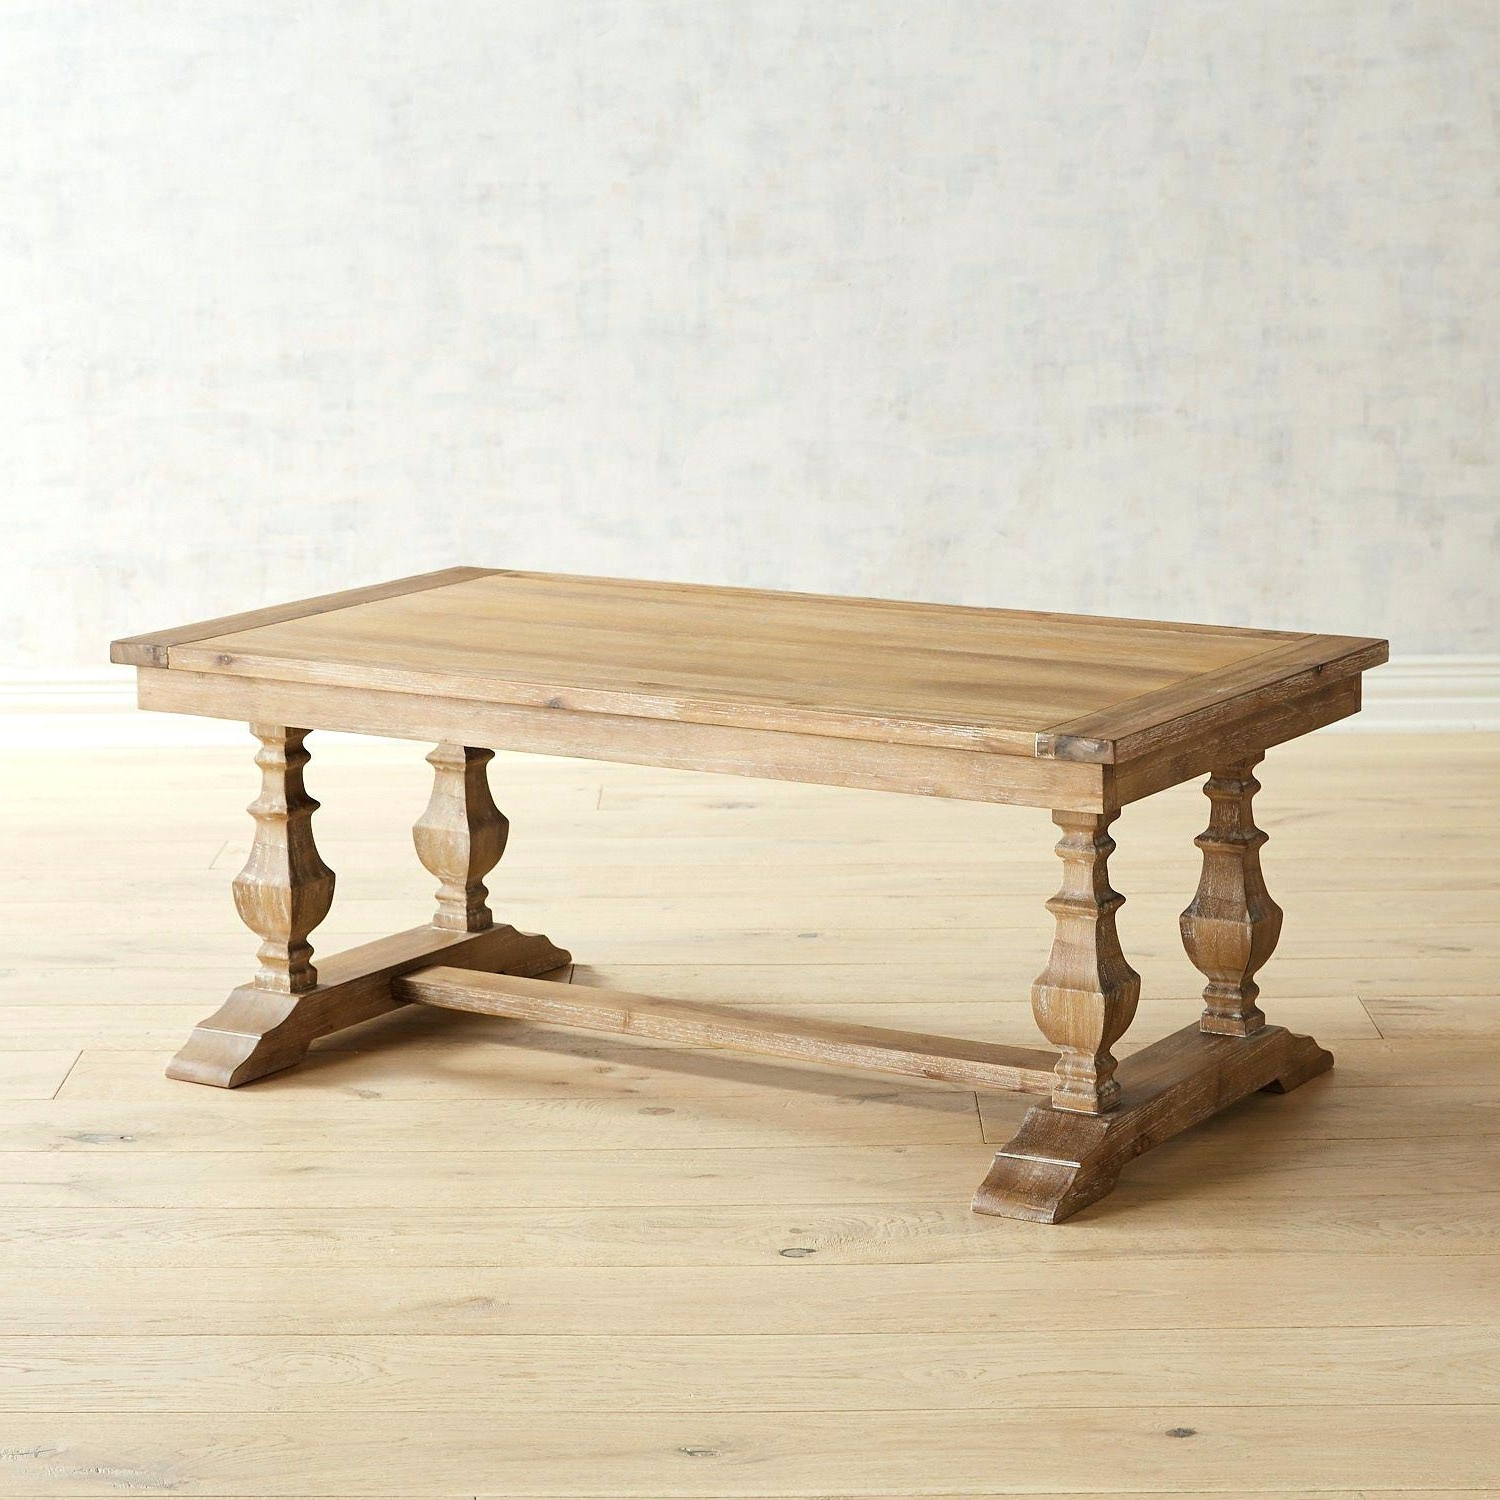 Natural Coffee Table Pier 1 Imports For Natural Coffee Table Plans Throughout Most Up To Date Light Natural Coffee Tables (View 20 of 20)